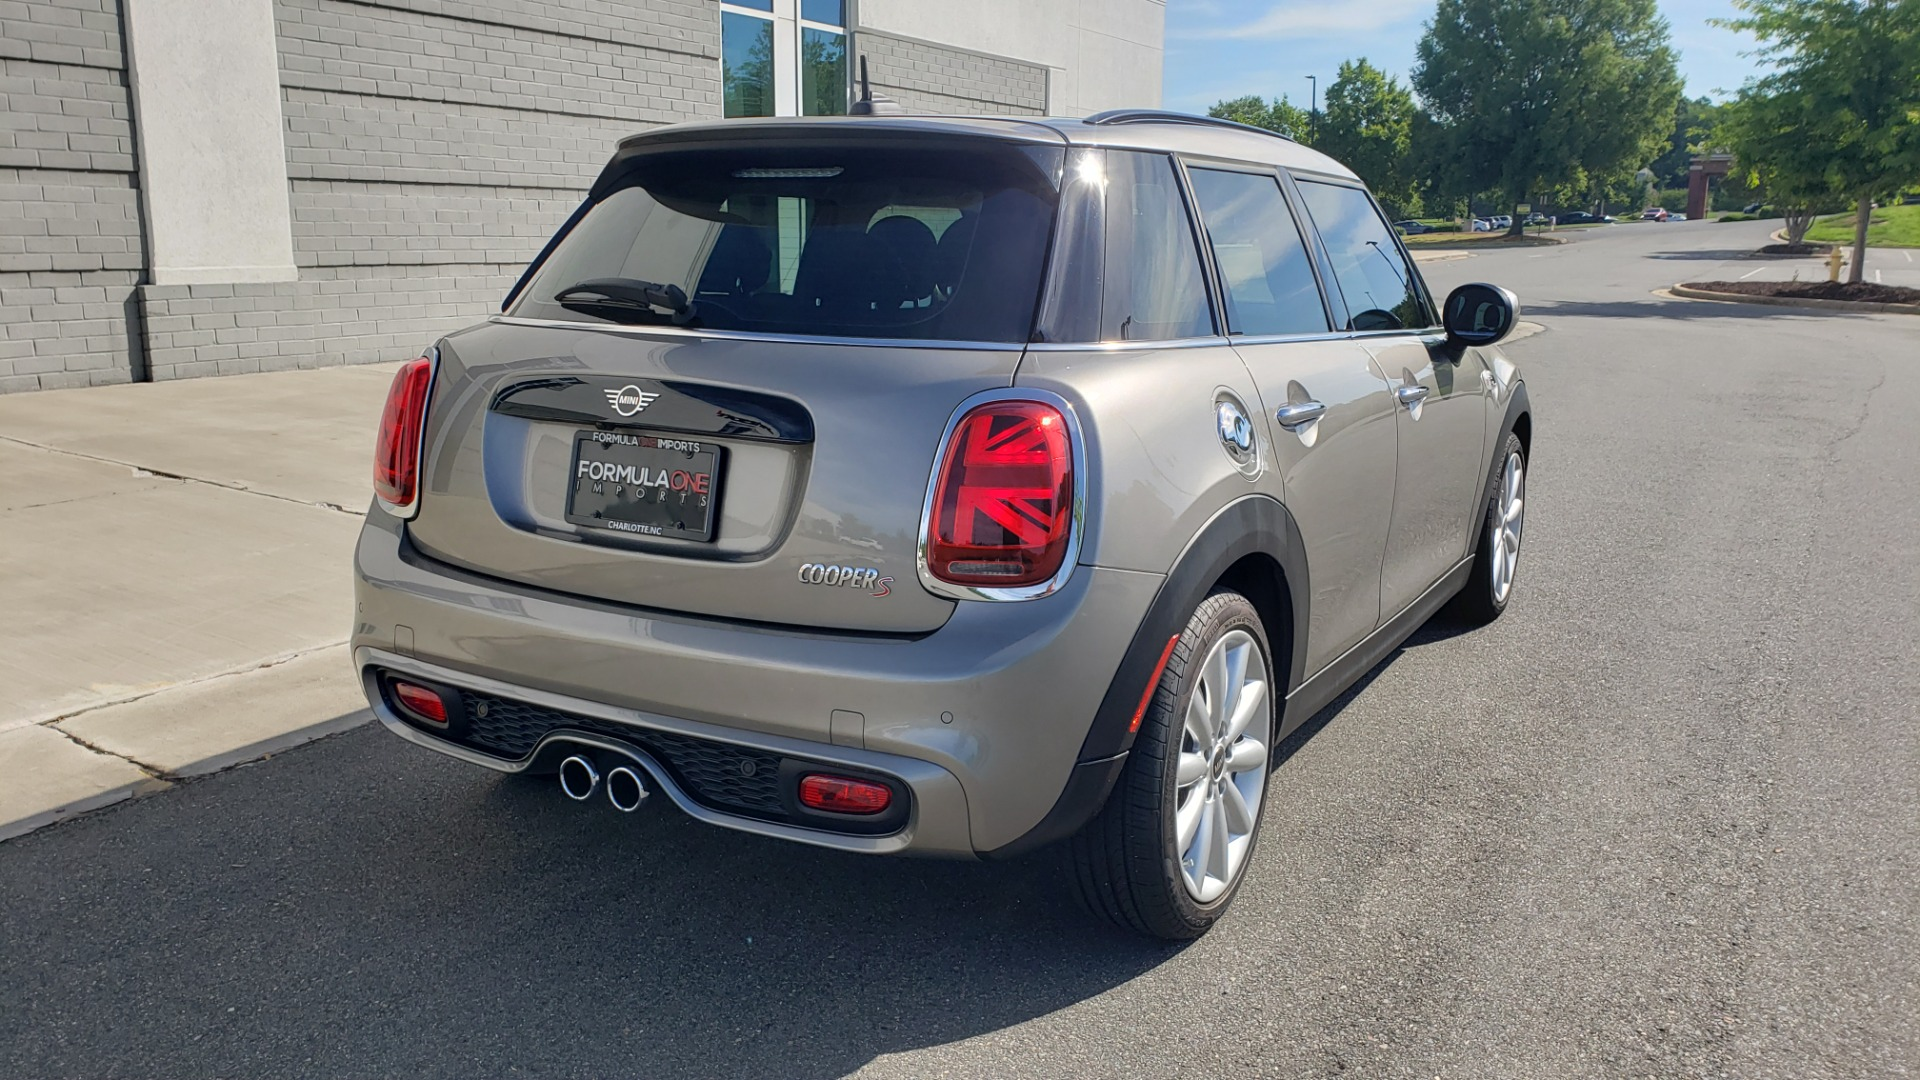 Used 2020 MINI HARDTOP 4 DOOR COOPER S / NAV / SUNROOF / AUTO / H/K SND / REARVIEW for sale $28,495 at Formula Imports in Charlotte NC 28227 6